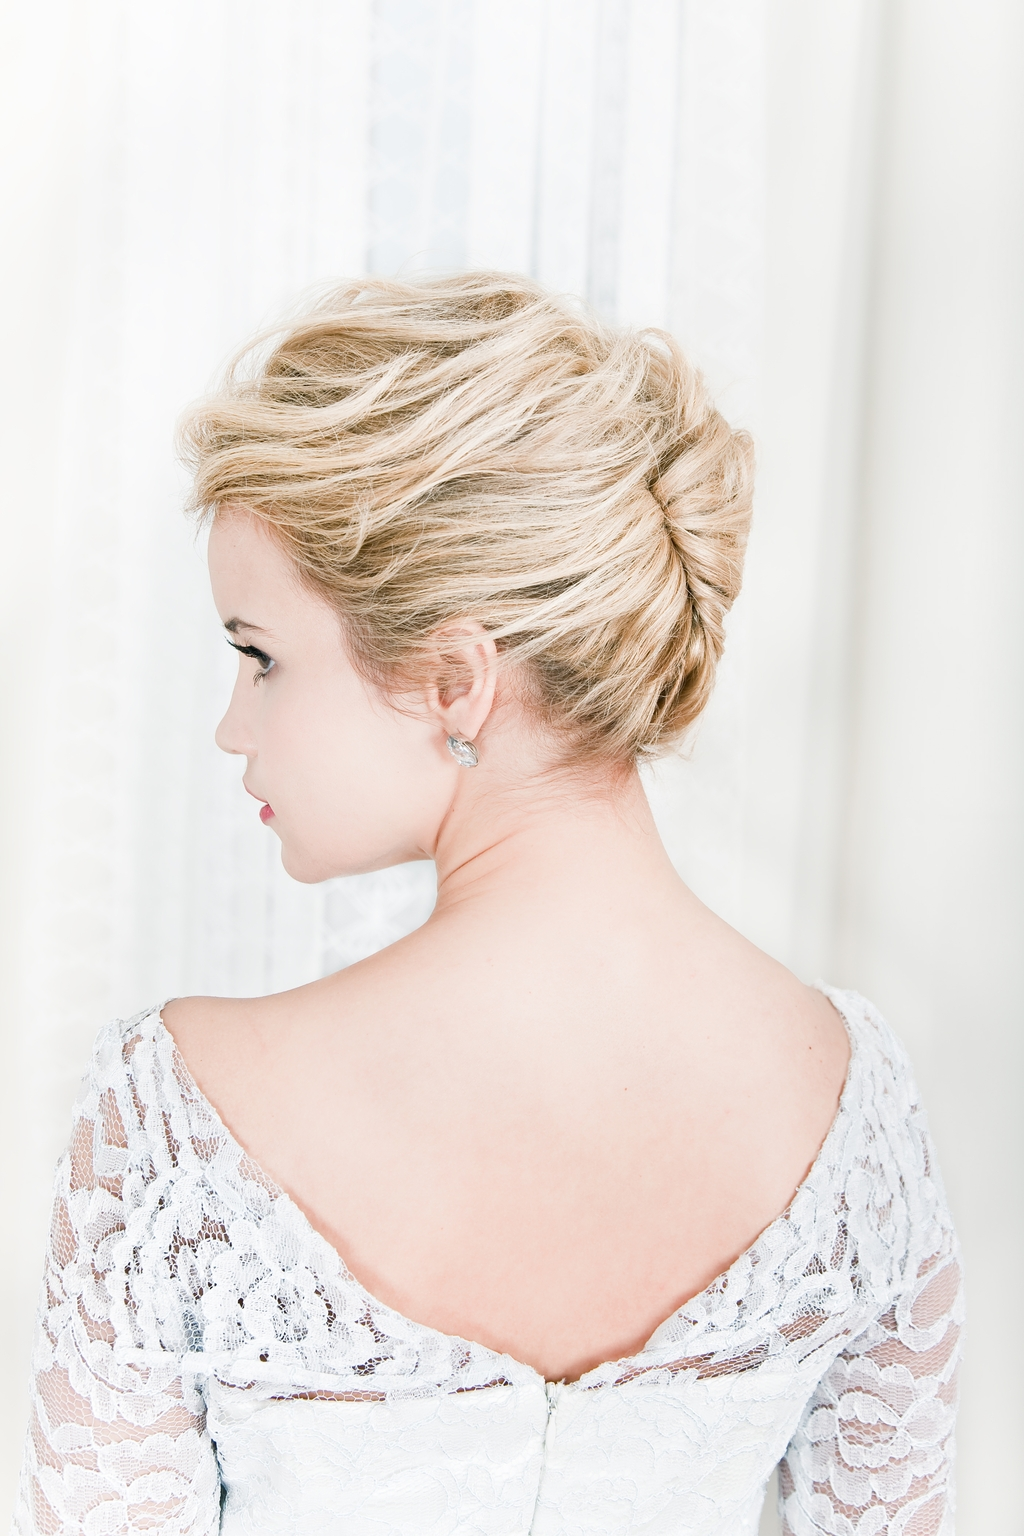 Sleek bridal updo, strapless wedding dress and layered pearl necklaces